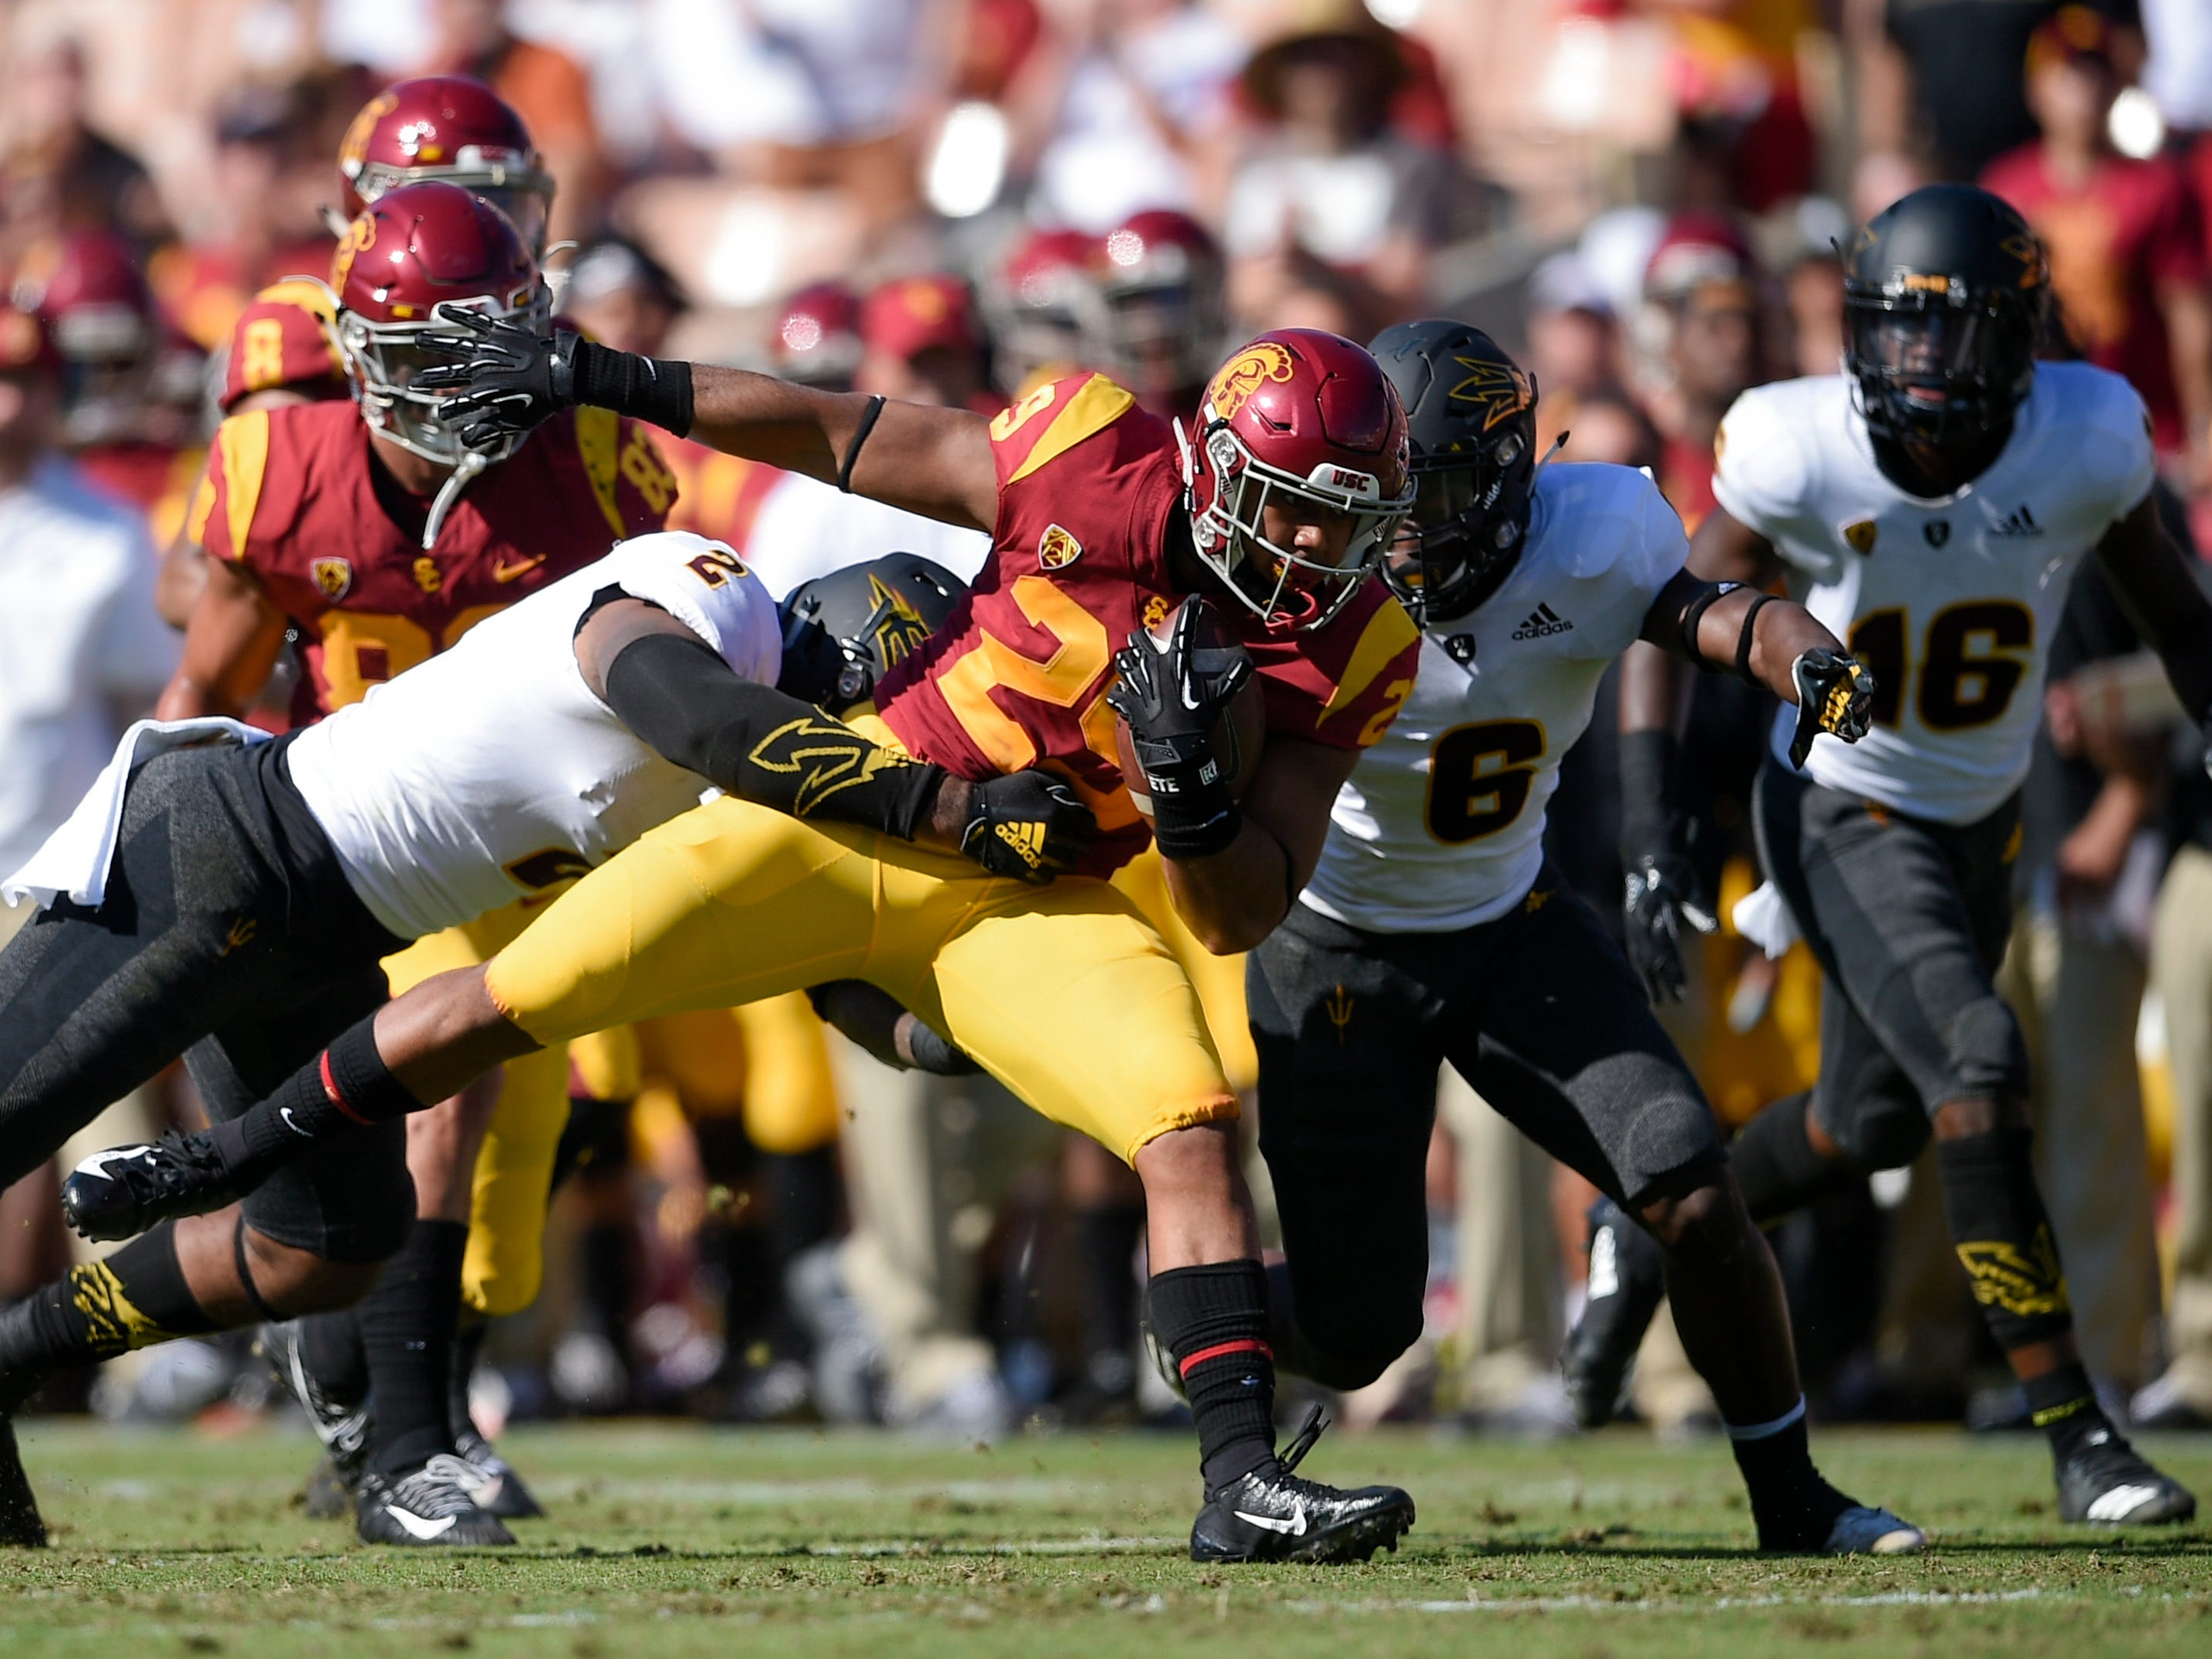 Oct 27, 2018; Los Angeles, CA, USA; Southern California Trojans running back Vavae Malepeai (29) runs the ball during the first half against the Arizona State Sun Devils at Los Angeles Memorial Coliseum. Mandatory Credit: Kelvin Kuo-USA TODAY Sports